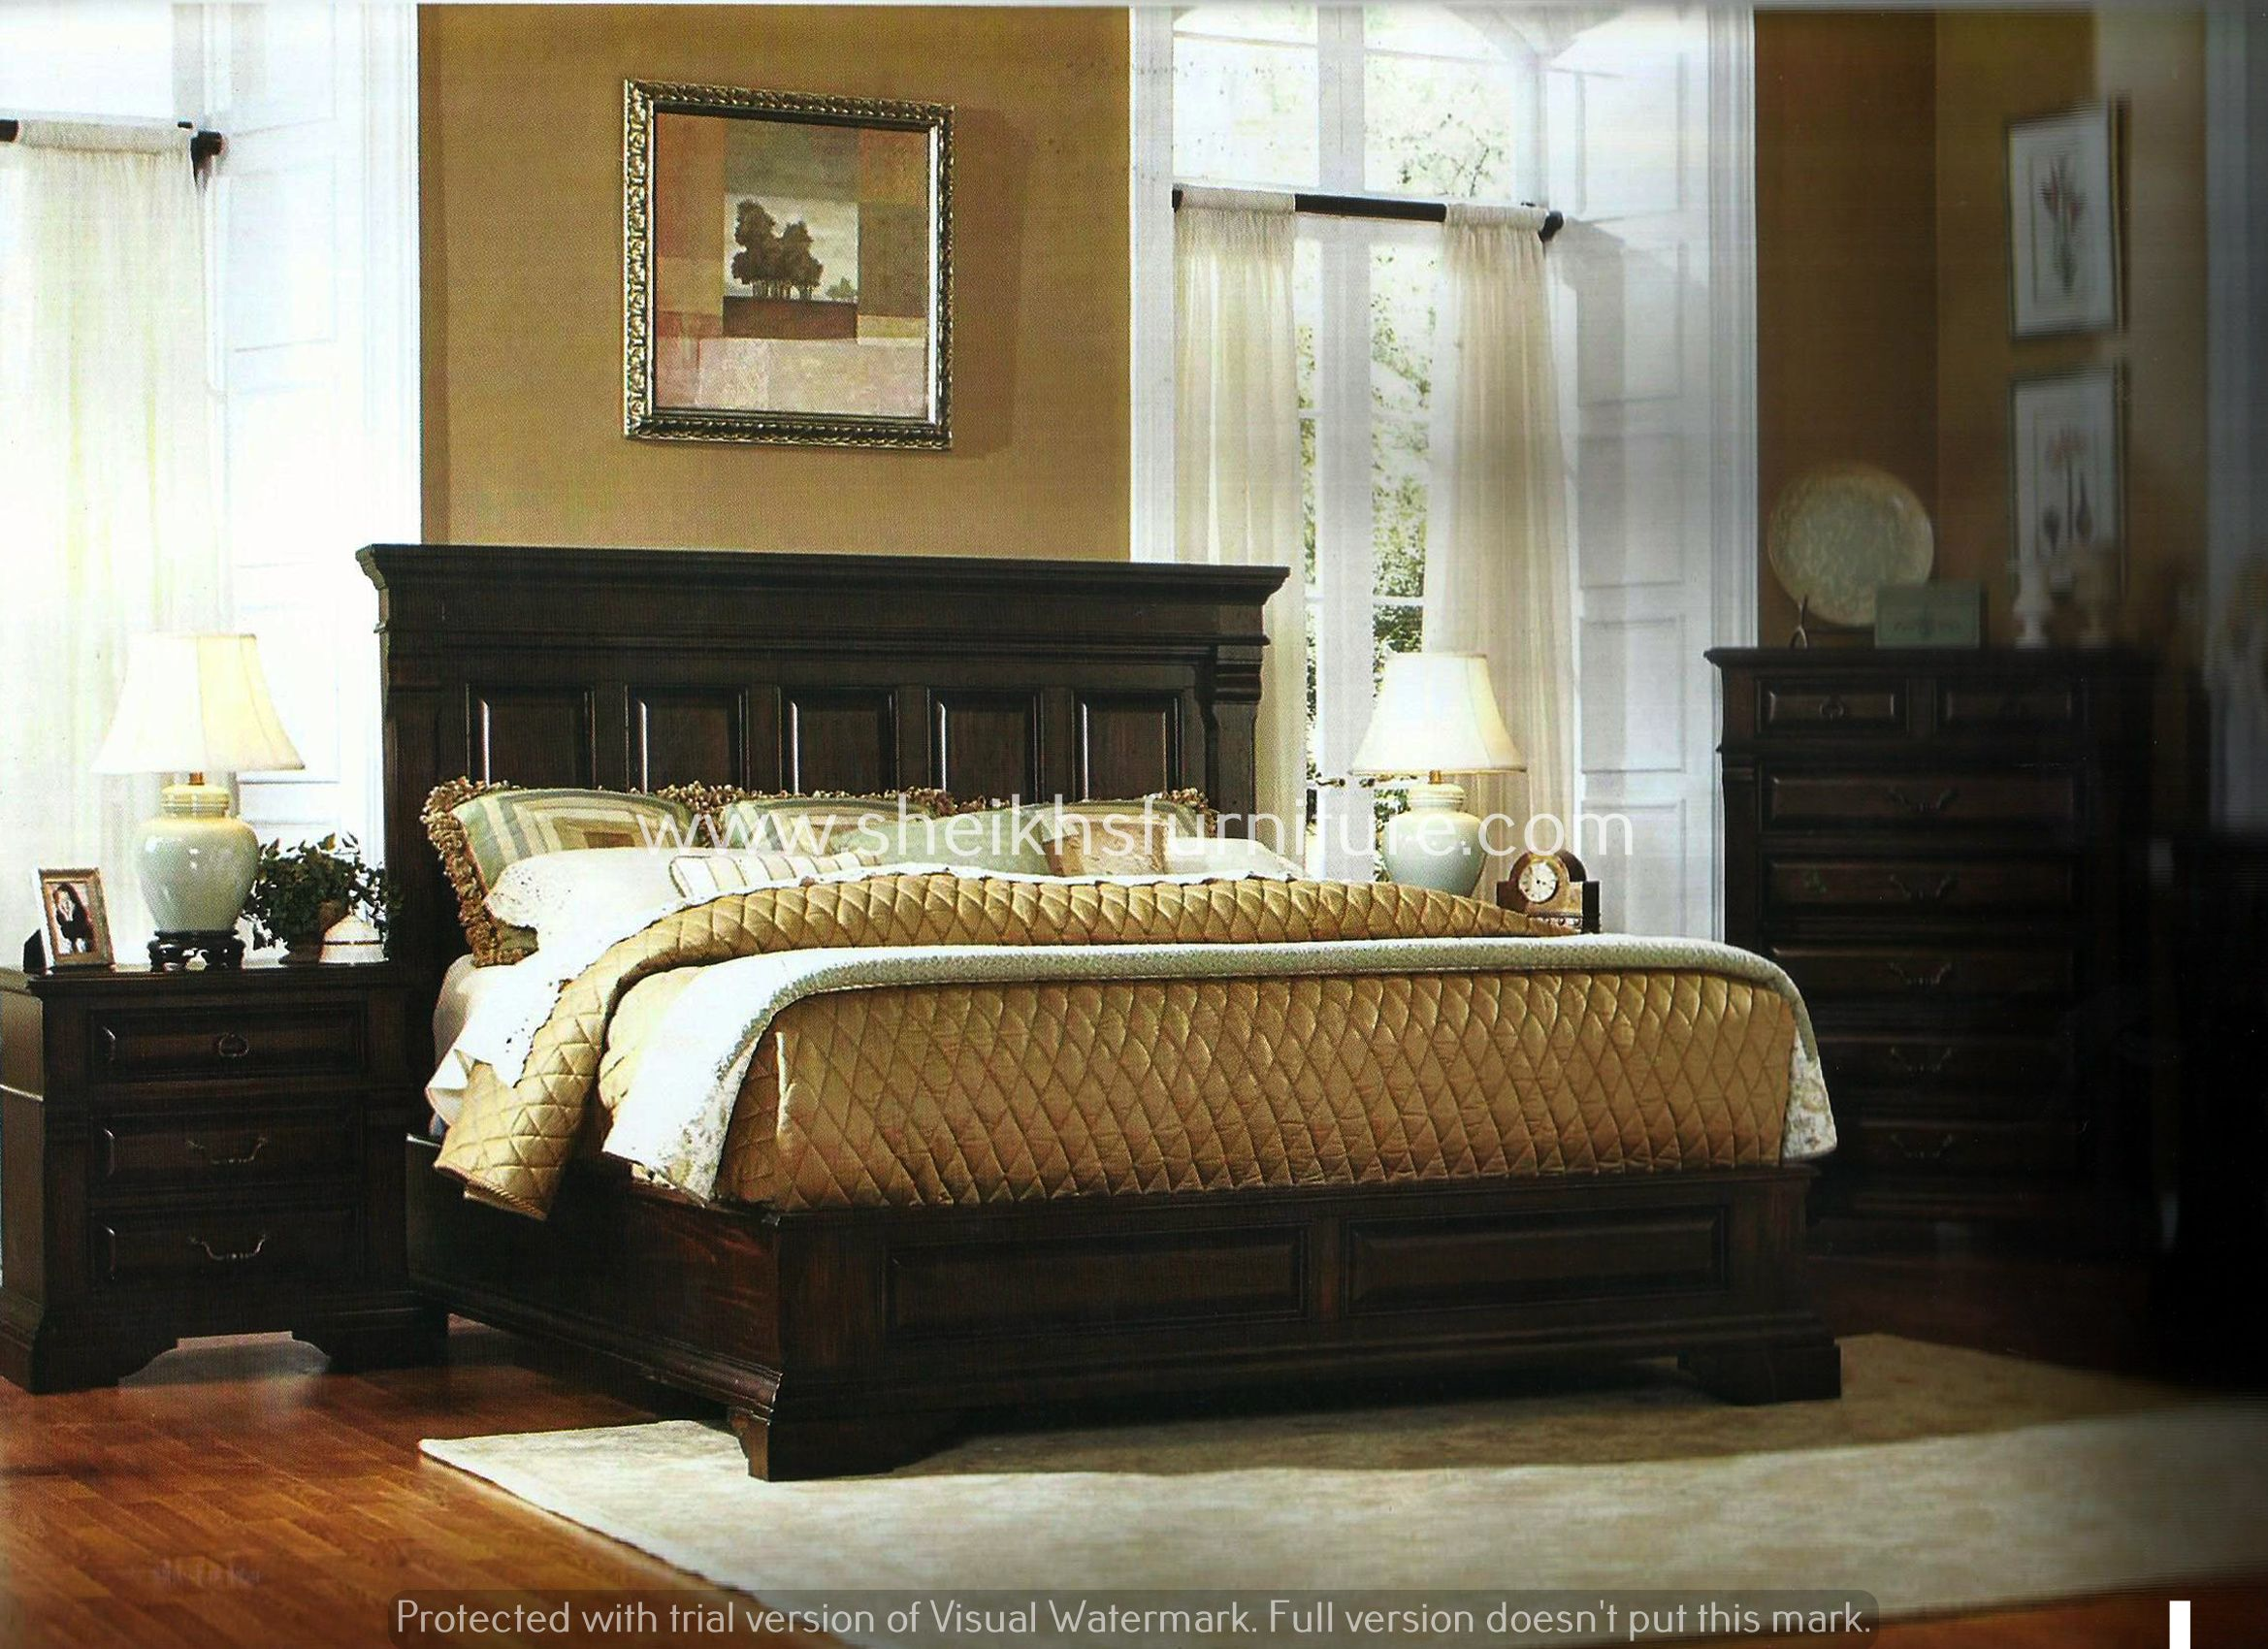 Muebles Pakist?n - This Is Our Solid Rosewood Bed This Bedroom Set Is Made In Pure [mjhdah]http://homepeek.co/wp-content/uploads/2017/04/skillful-ideas-8-modern-furniture-sites-bedroom-bedroom.jpg